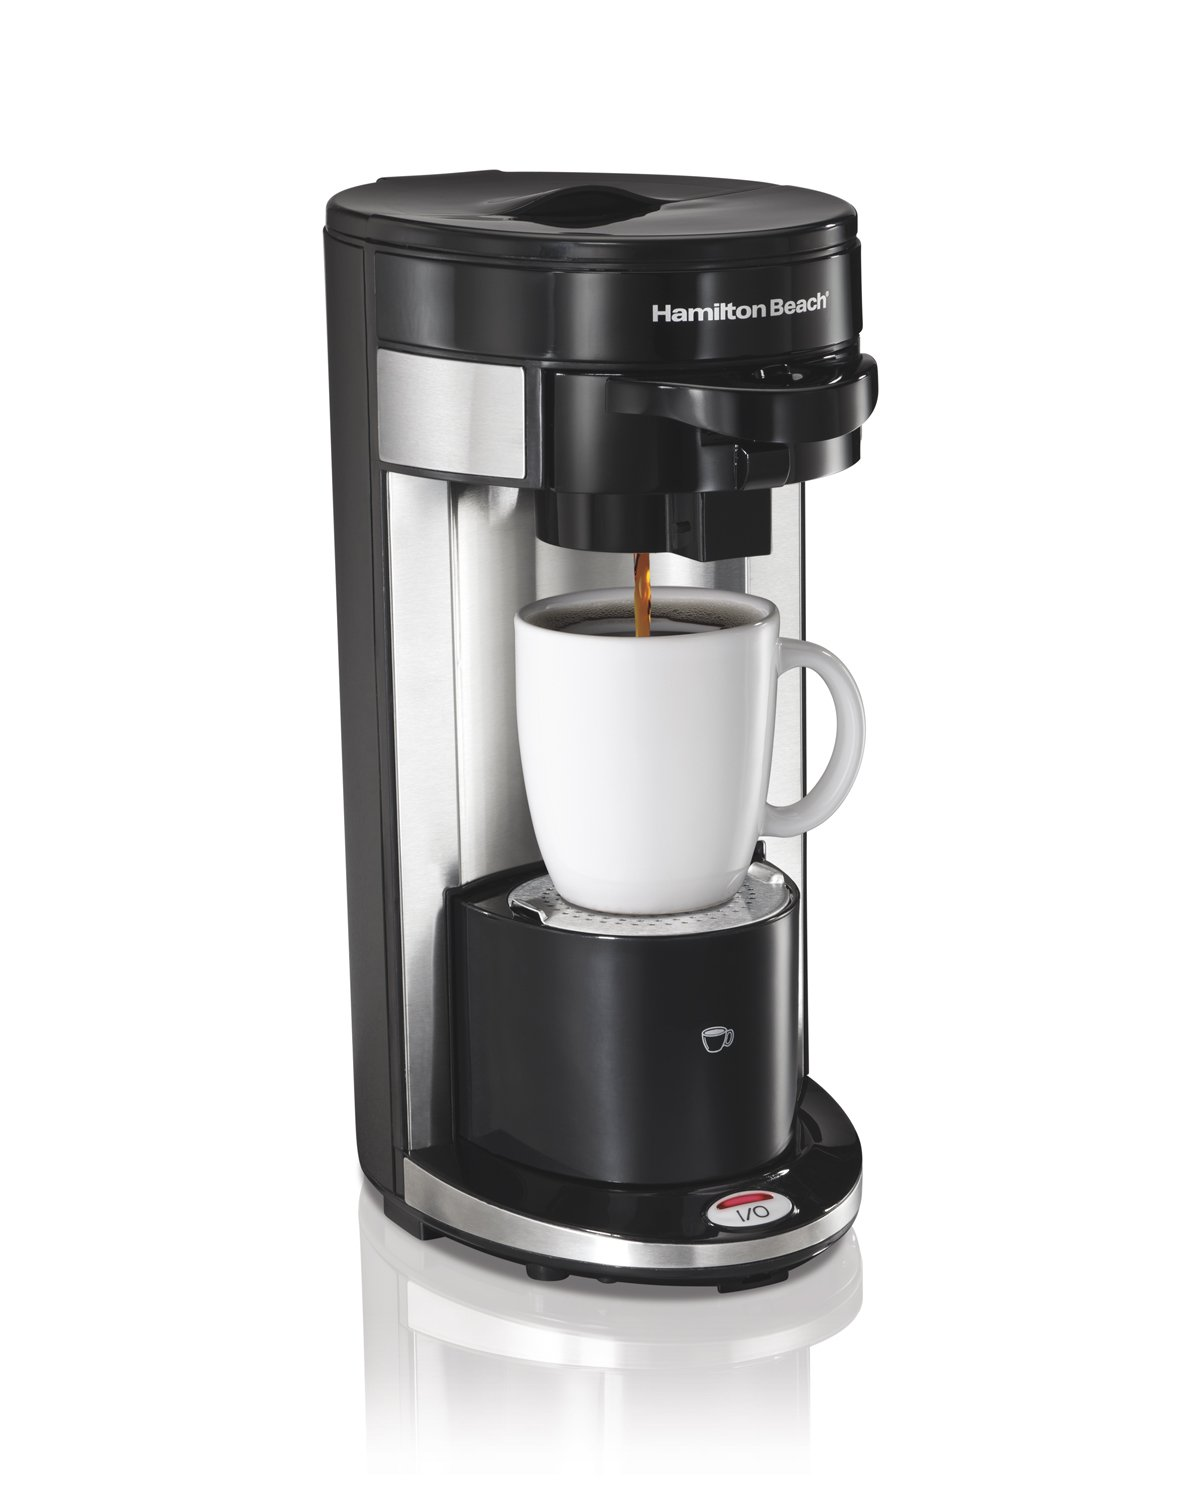 Hamilton Beach Coffee Maker 49999A: Single Serving of the Best Coffee